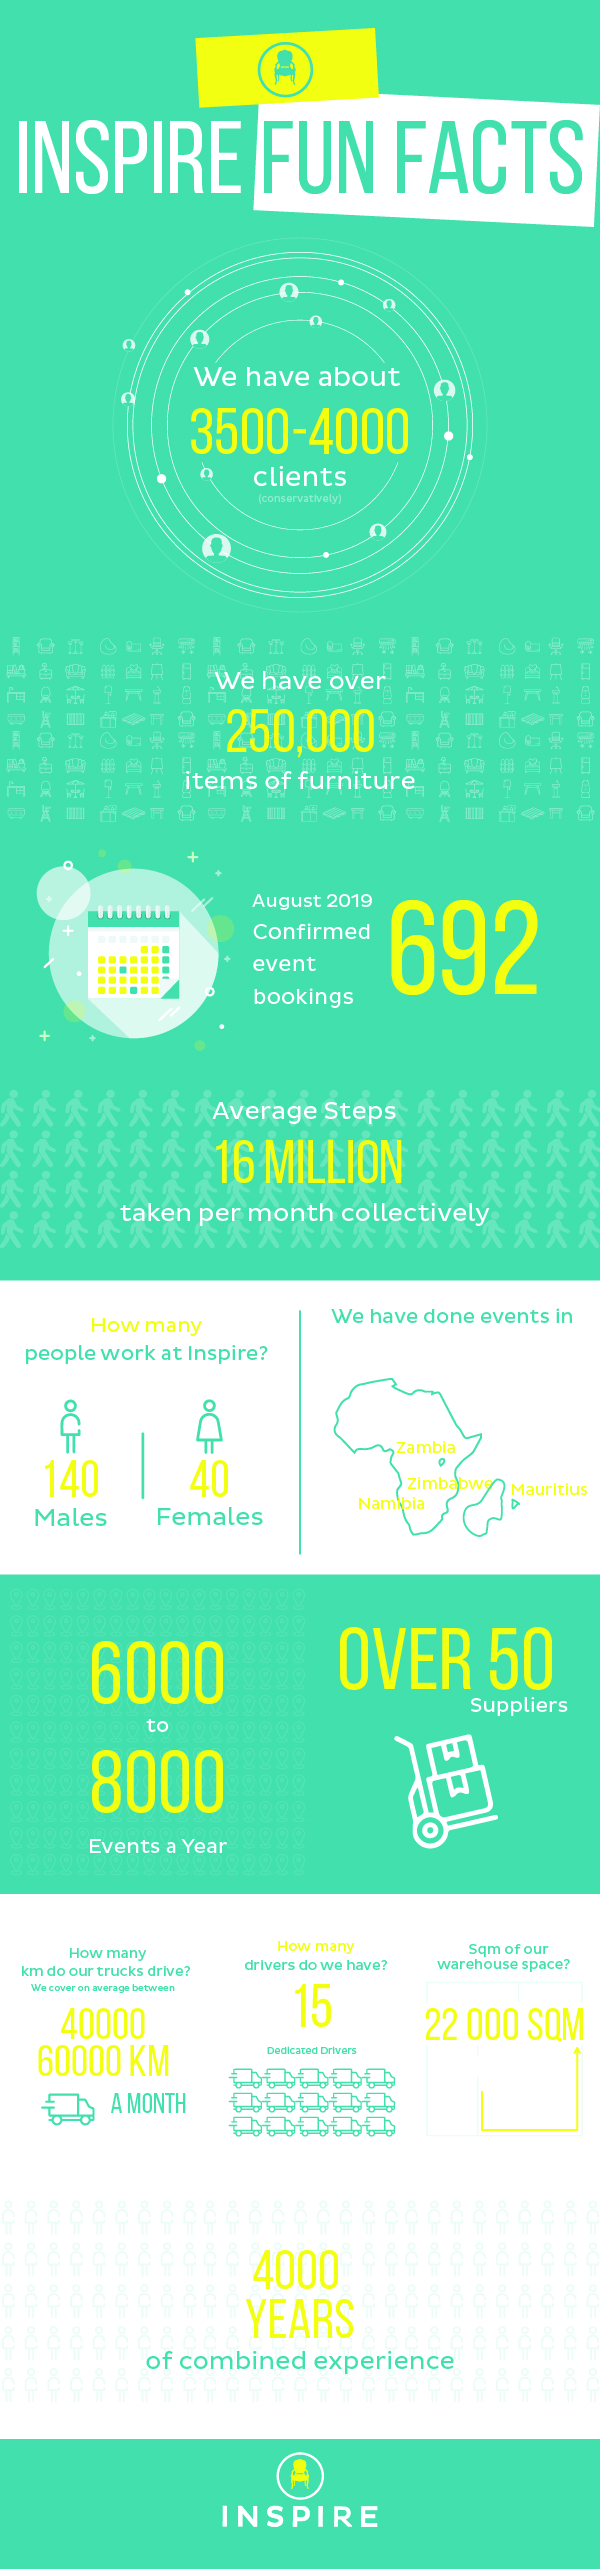 Inspire Furniture Fun Facts - Plan your Large scale Event